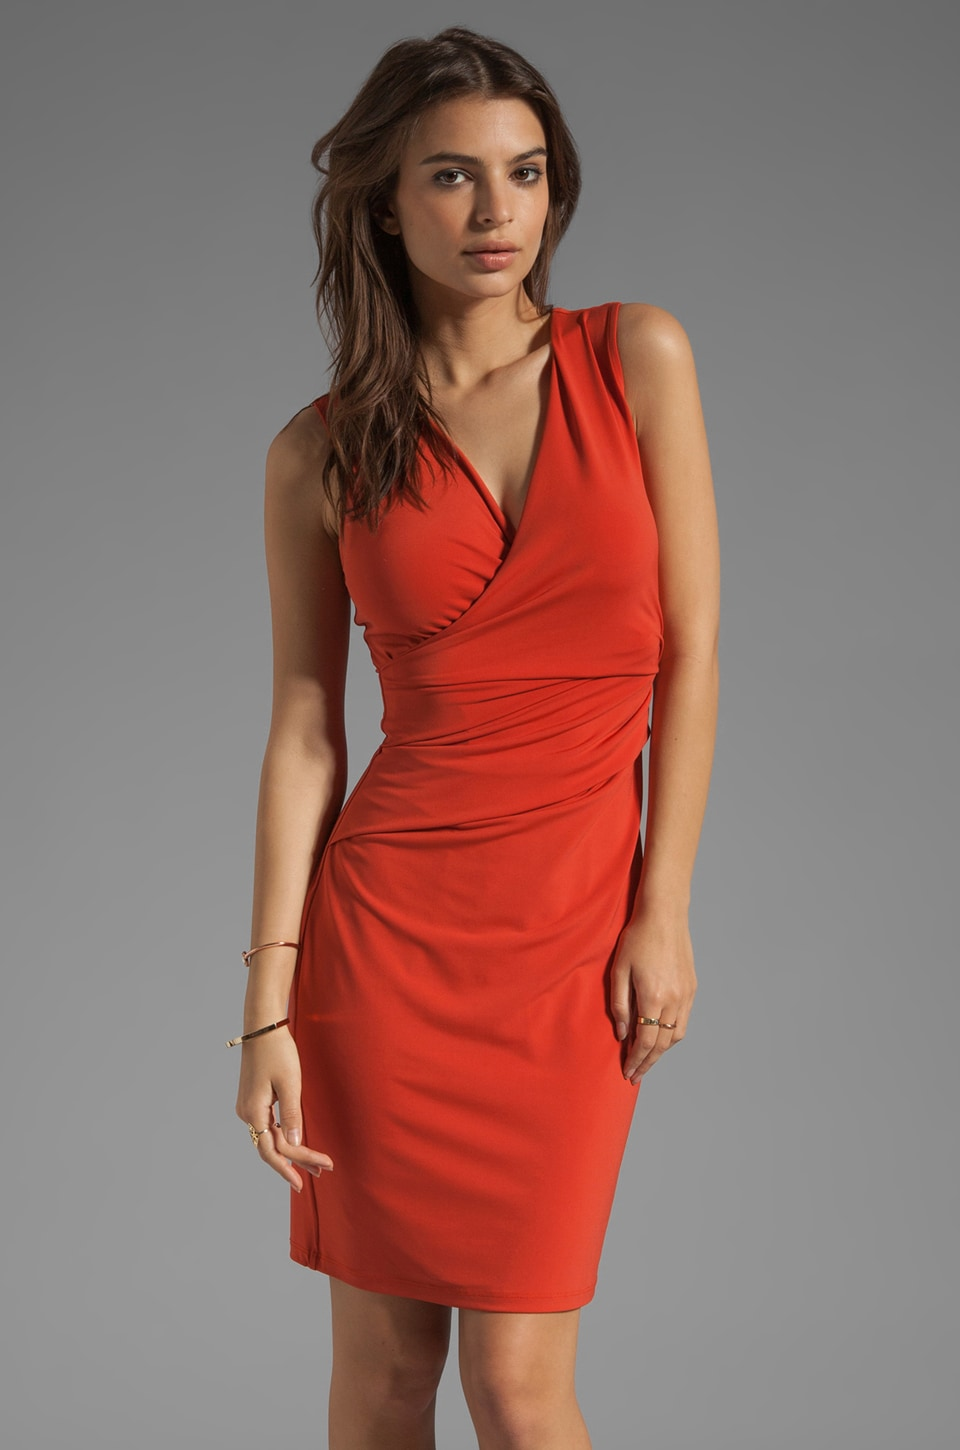 Graham & Spencer Stretch Jersey Tank Dress in Tangier